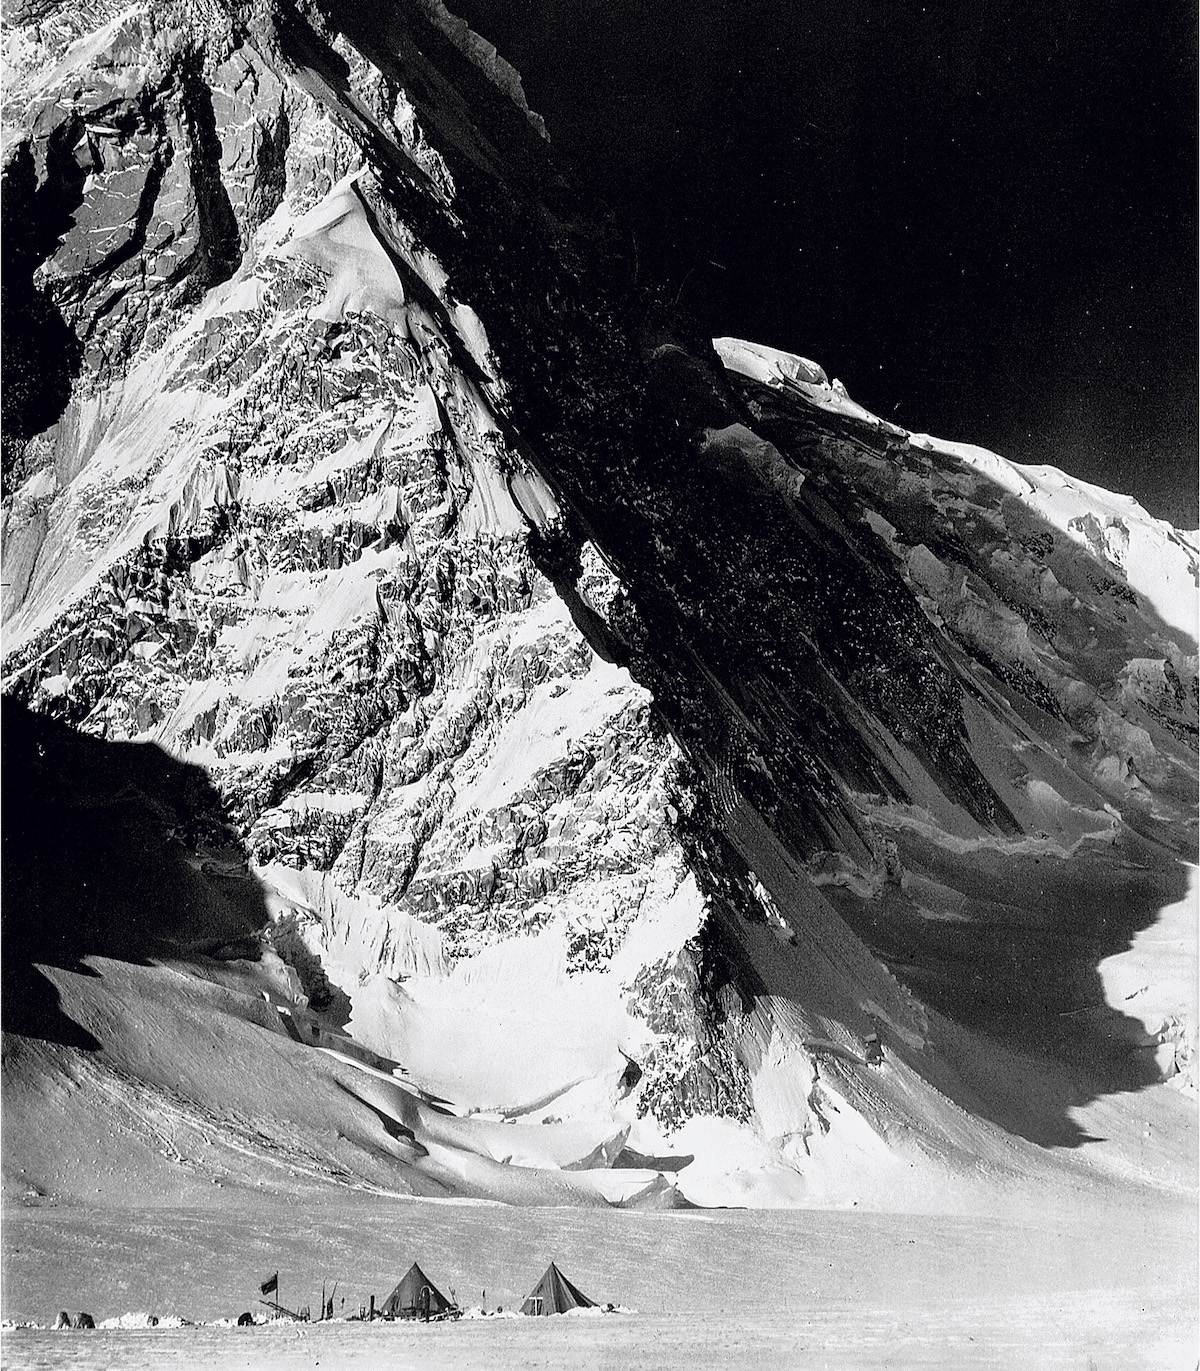 The north buttress of Mt. Kennedy as seen during the 1935 National Geographic Society Yukon Expedition. At the time, Bob Bates wrote that he hoped the peak would be called Mt. Washburn. It was known as East Hubbard until it was renamed for President Kennedy in 1965. In his years as director of the Boston Museum of Science, Washburn hung an enlarged version of this photograph on his office wall. [Photo] Bradford Washburn, Bradford Washburn collection, Museum of Science